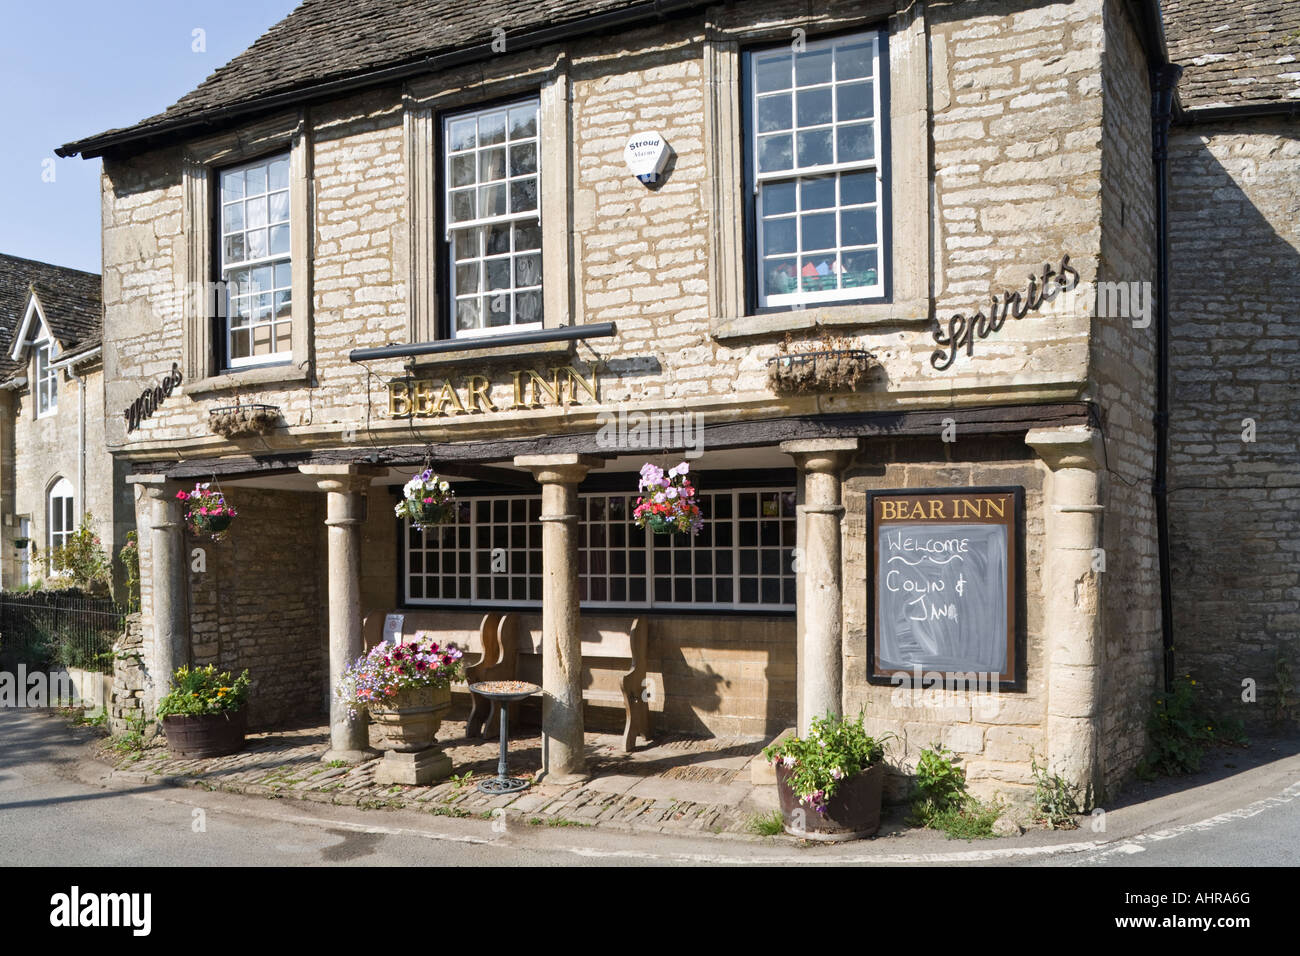 The 16th century Bear Inn (once the village courthouse and assembly room) in the Cotswold village of Bisley, Gloucestershire - Stock Image